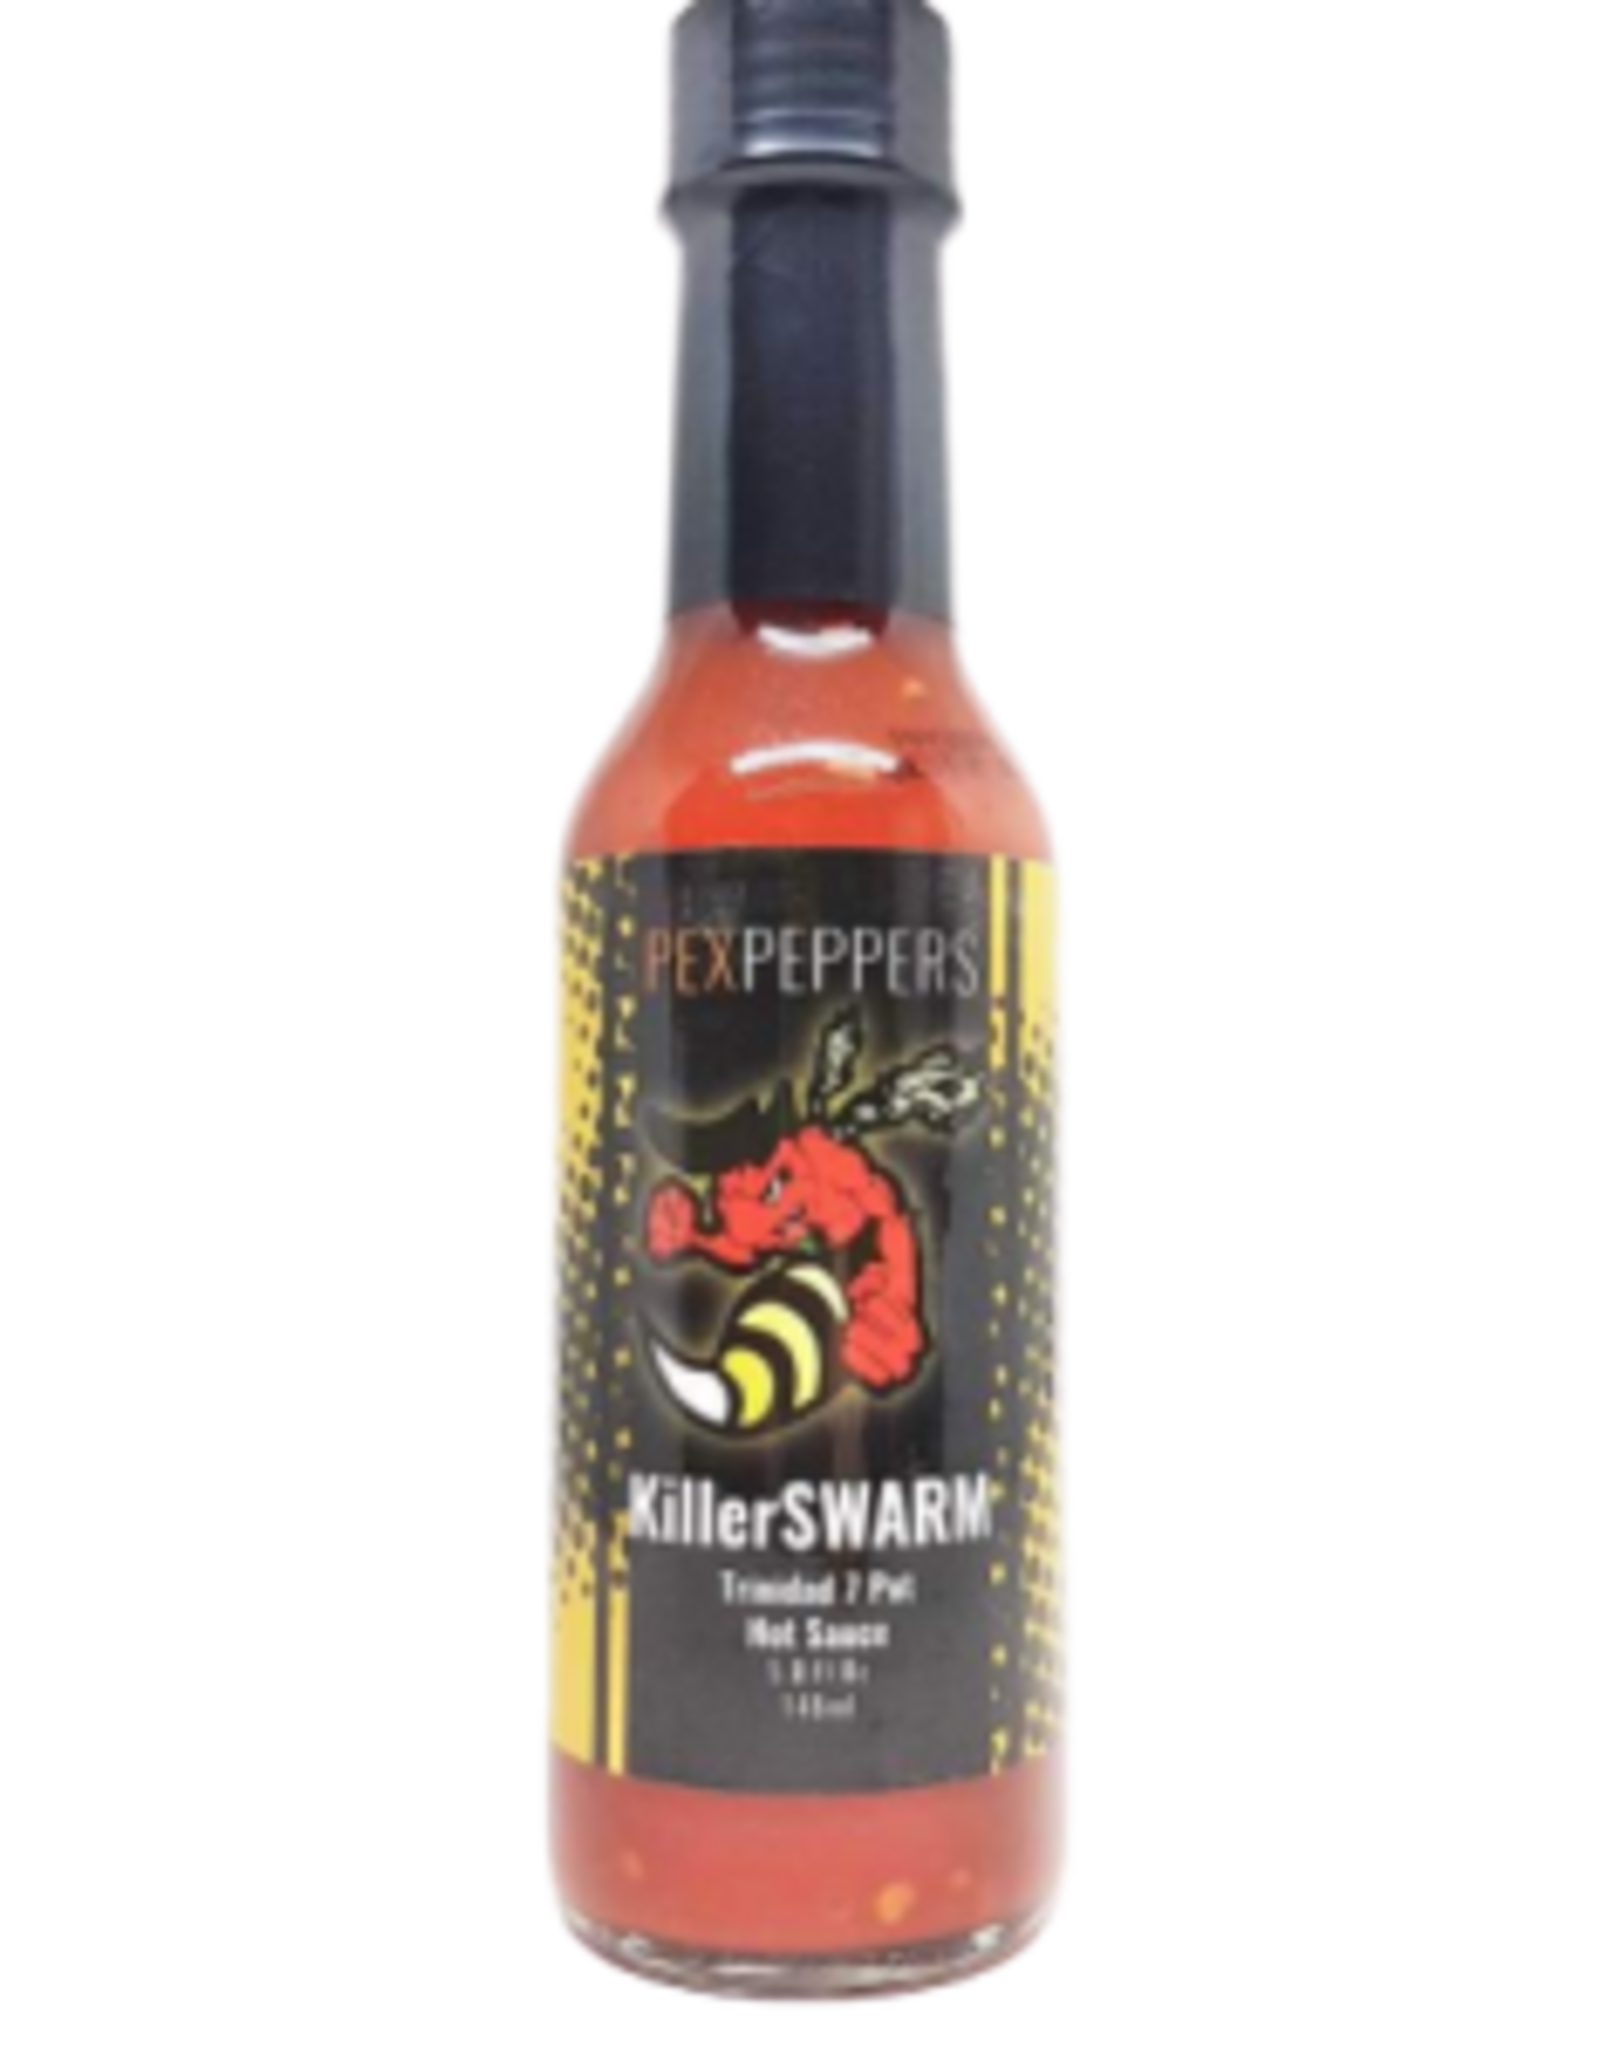 PexPeppers Killer Swarm